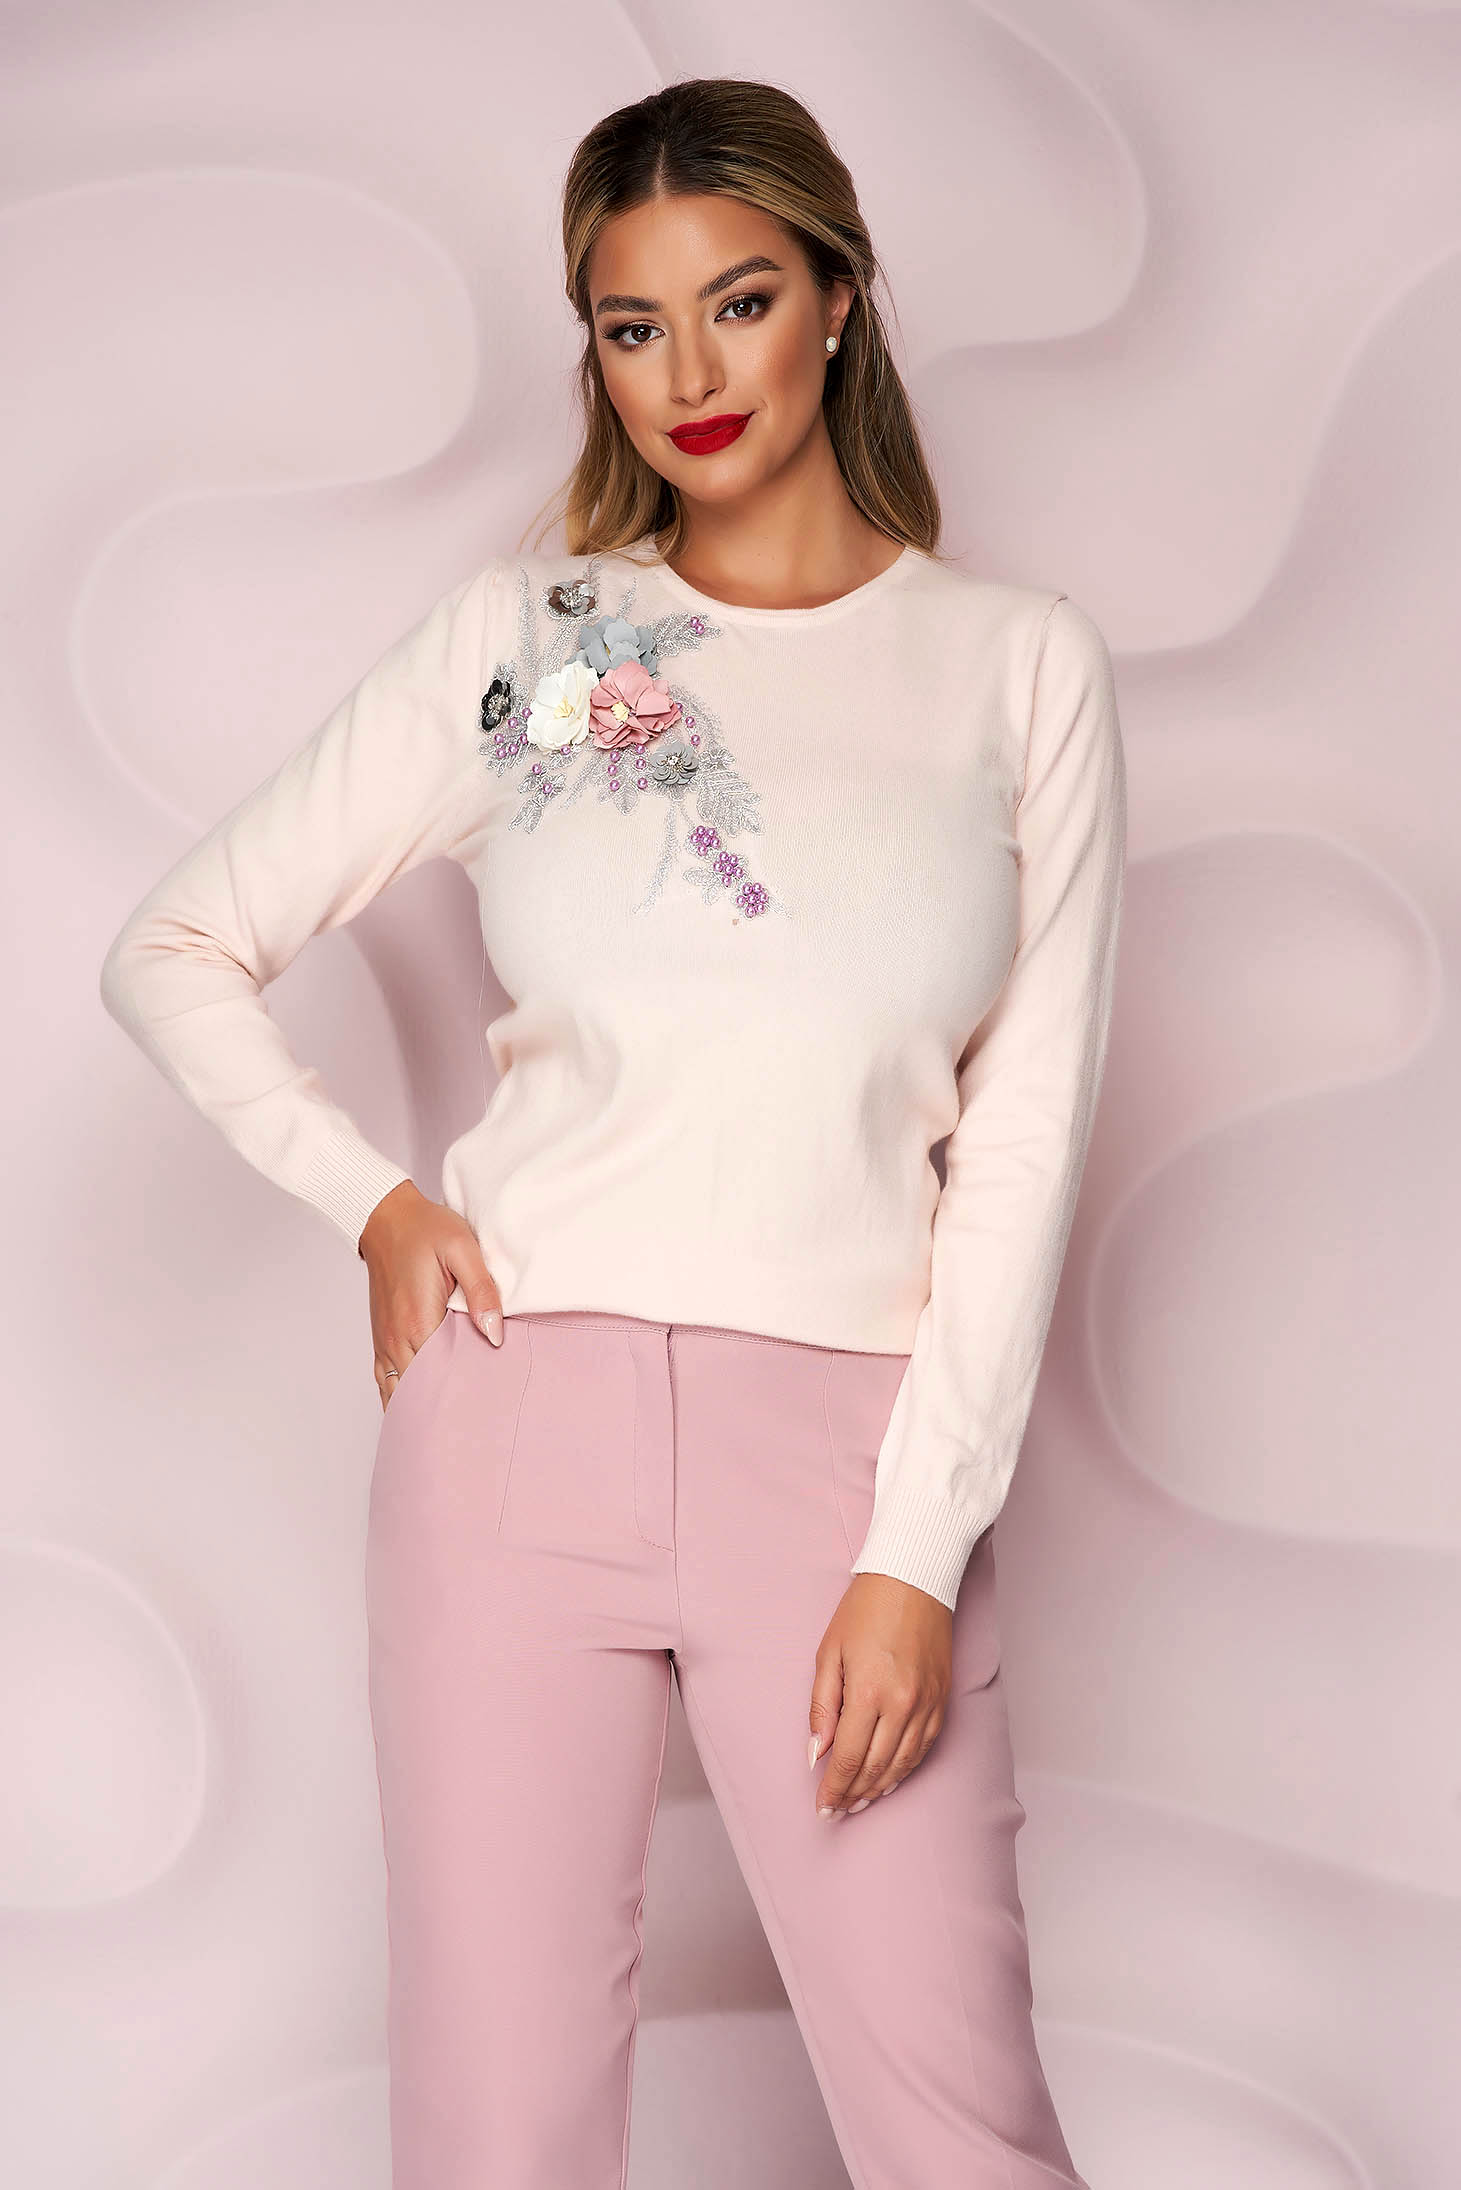 Lightpink sweater knitted loose fit with raised flowers with 3d effect